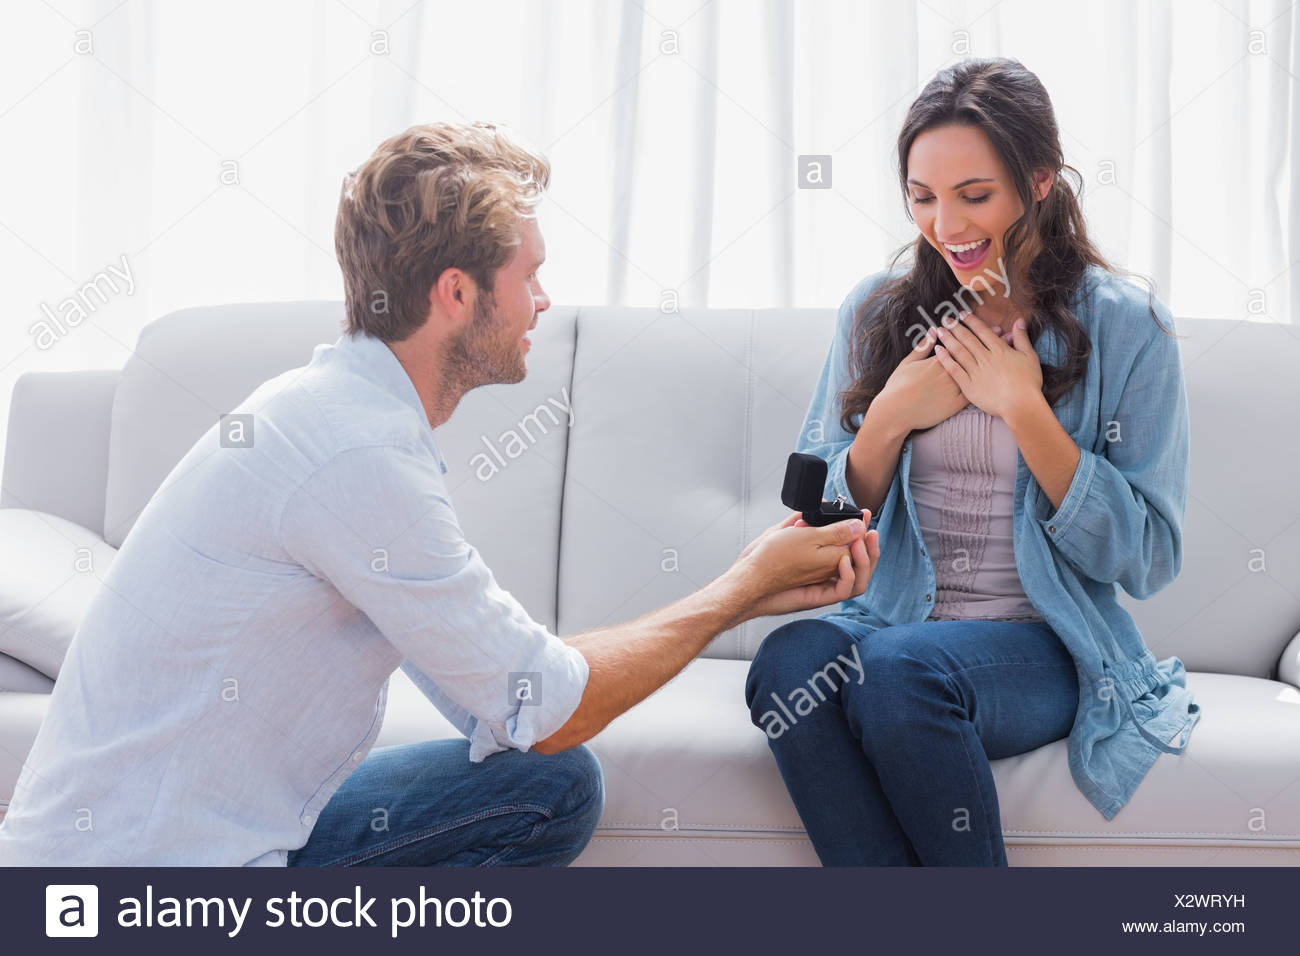 Handsome man doing a marriage proposal Stock Photo